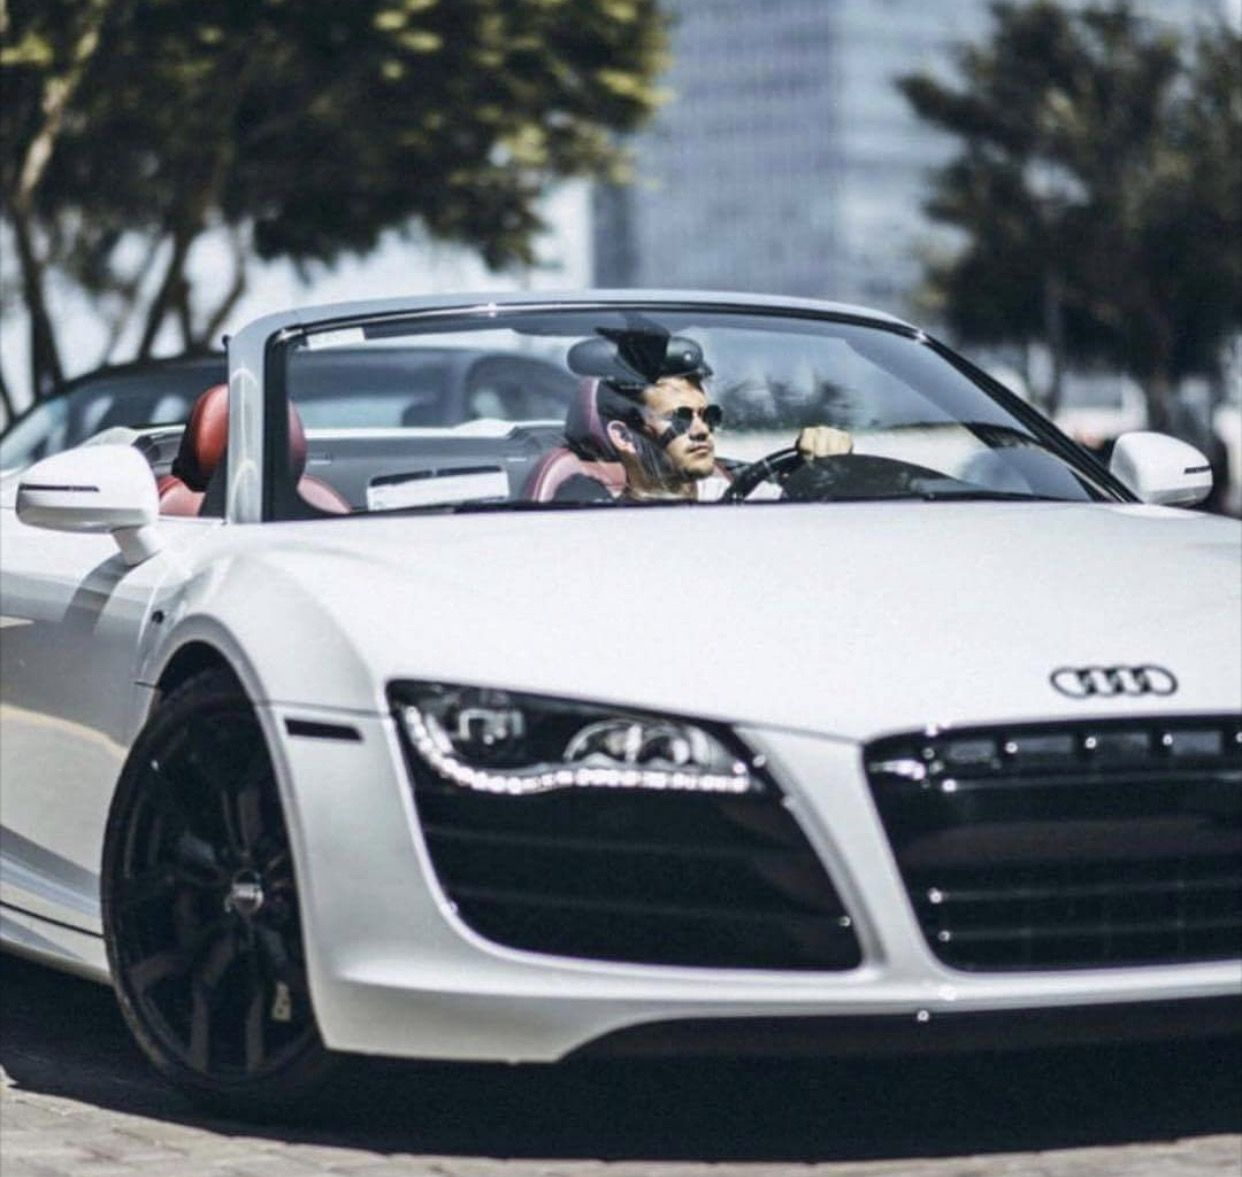 Pin by Clay D. De Oliveira on AUTOS (With images) Audi